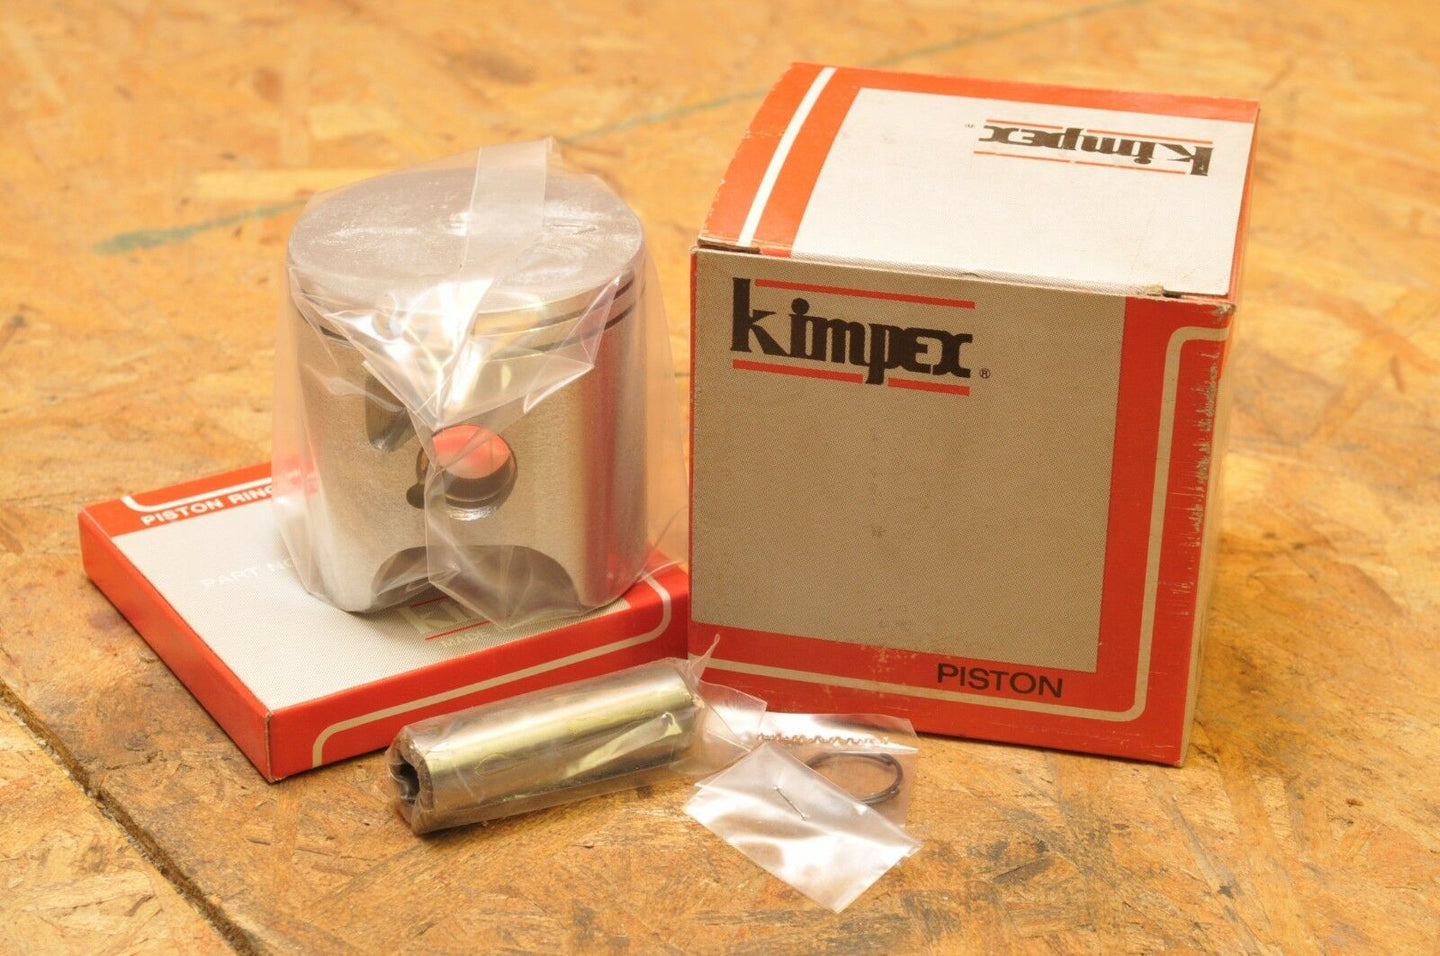 NEW NOS KIMPEX PISTON KIT 09-720-02 POLARIS INDY 500 CLASSIC XC 1999-05 20 OVER